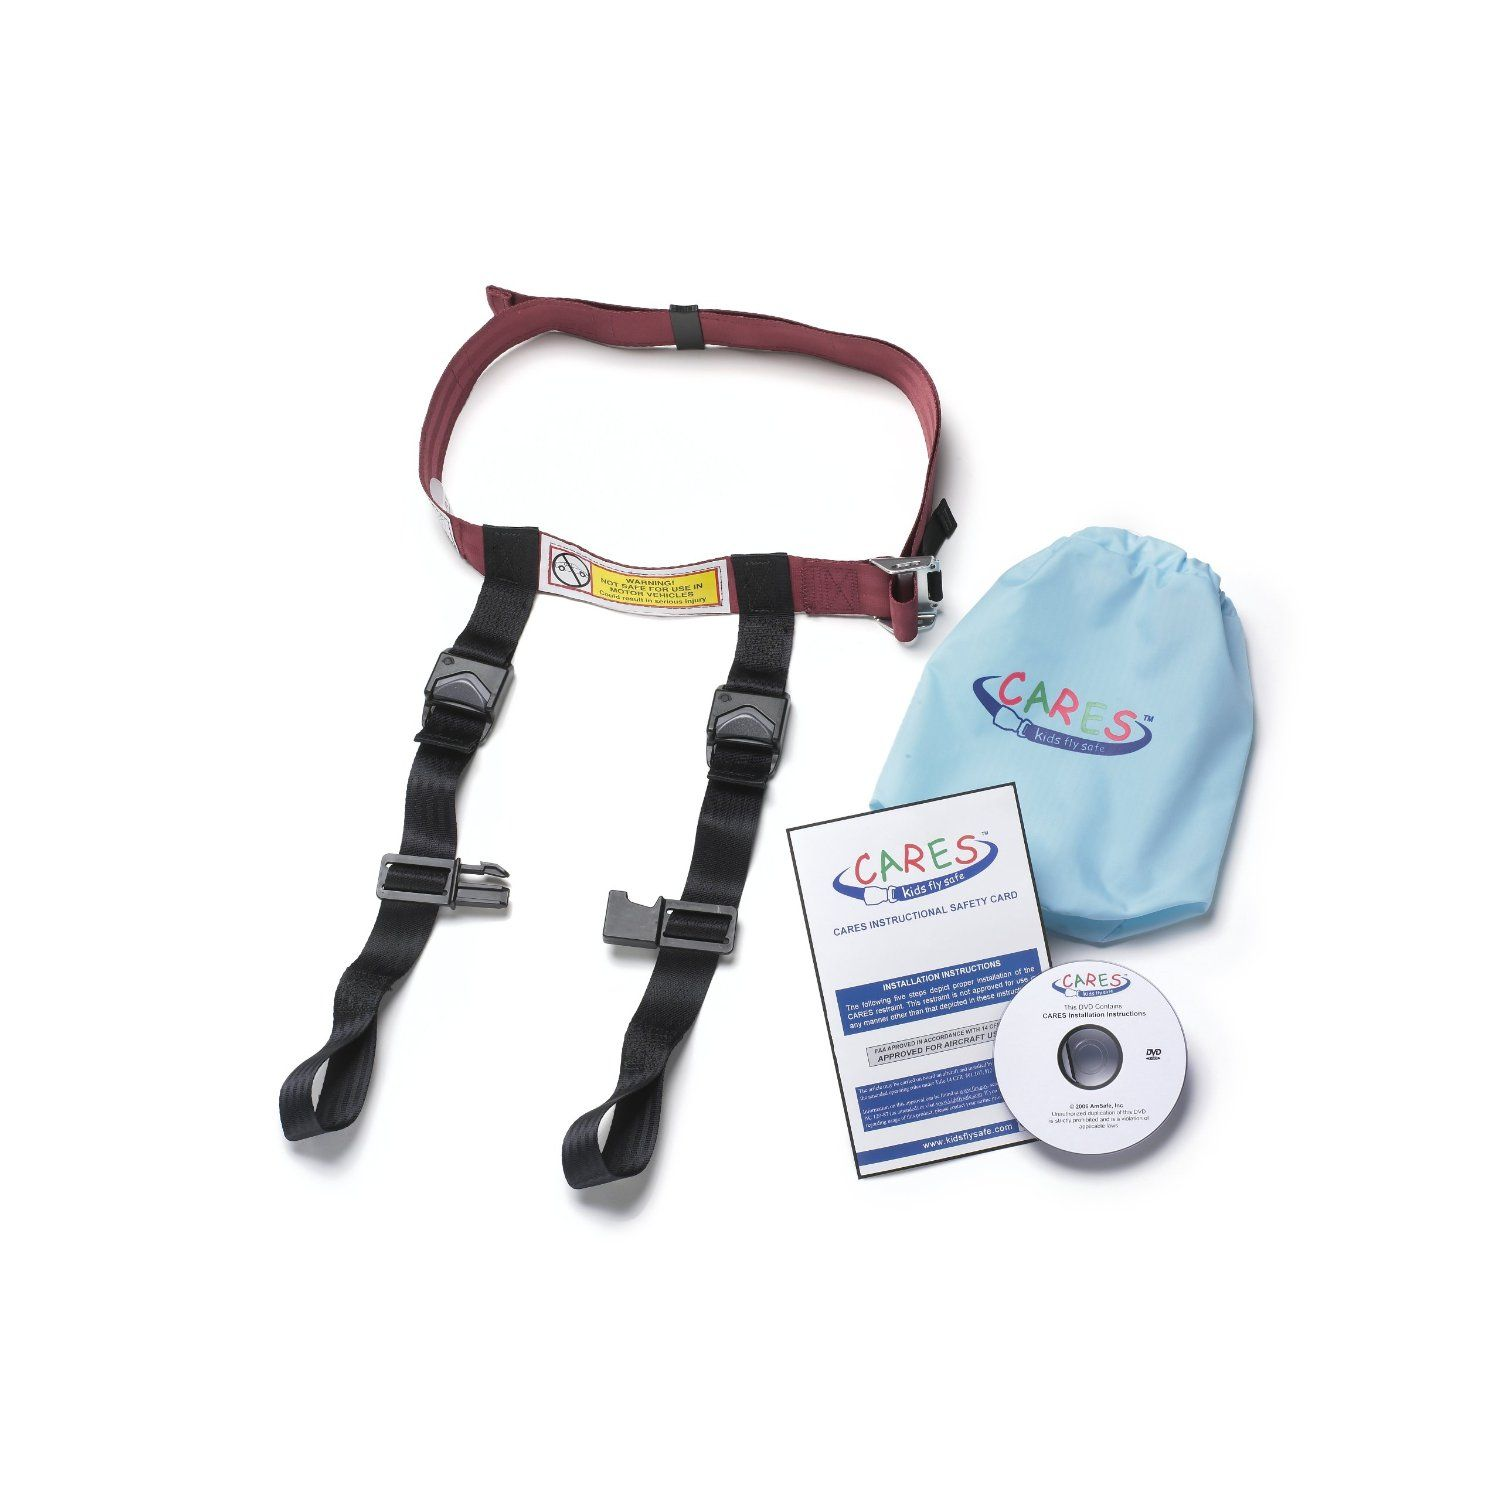 CARES Child Aviation Restraint System FAA approved